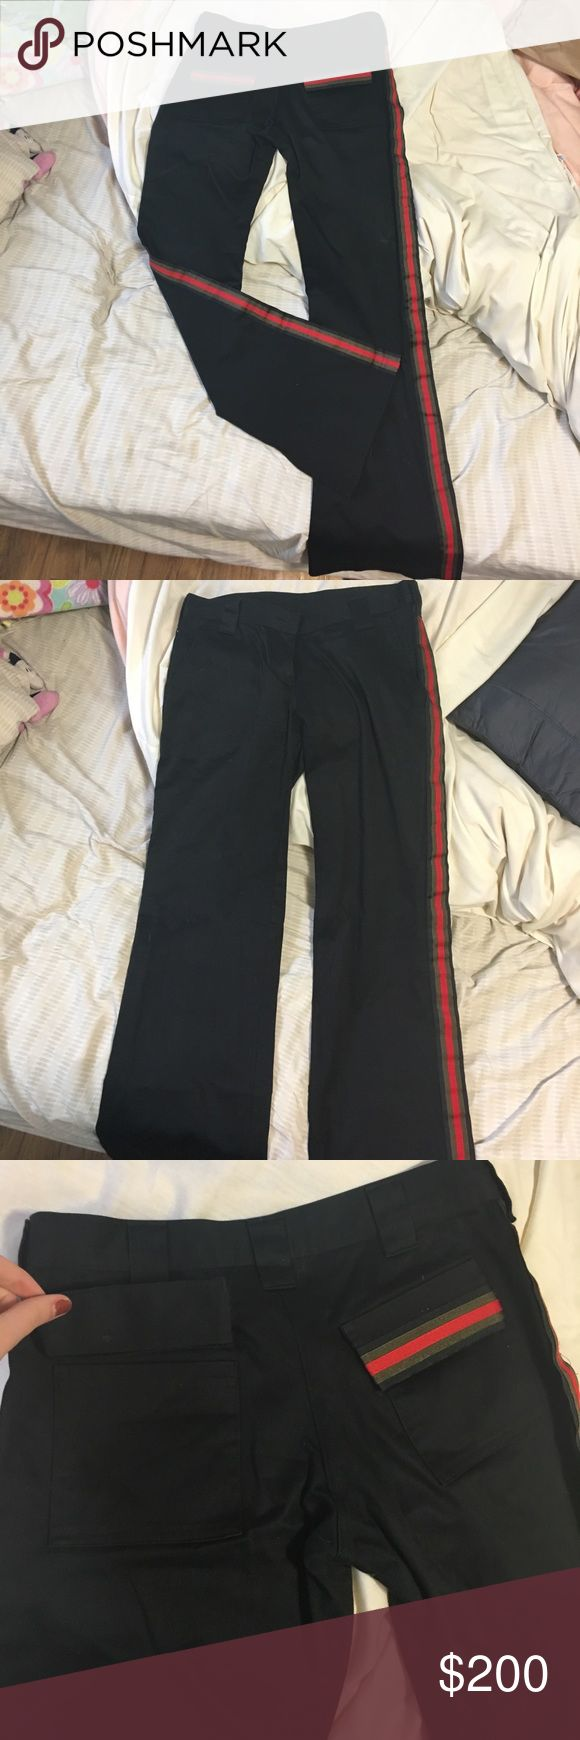 Celebrity clothing designer pants Says size 0 but fits like a 6. Slim flare cut, black pants with green black and red side stripes. One belt loop was re sewn down with blue thread. .............These are by celebrity clothing designer Perry White. I'll link his twitter. There are 6 inch slit details on the inside of each ankle. .......Tagged AM for visibility ..........https://mobile.twitter.com/perrywhitela?lang=en Alexander McQueen Pants Boot Cut & Flare